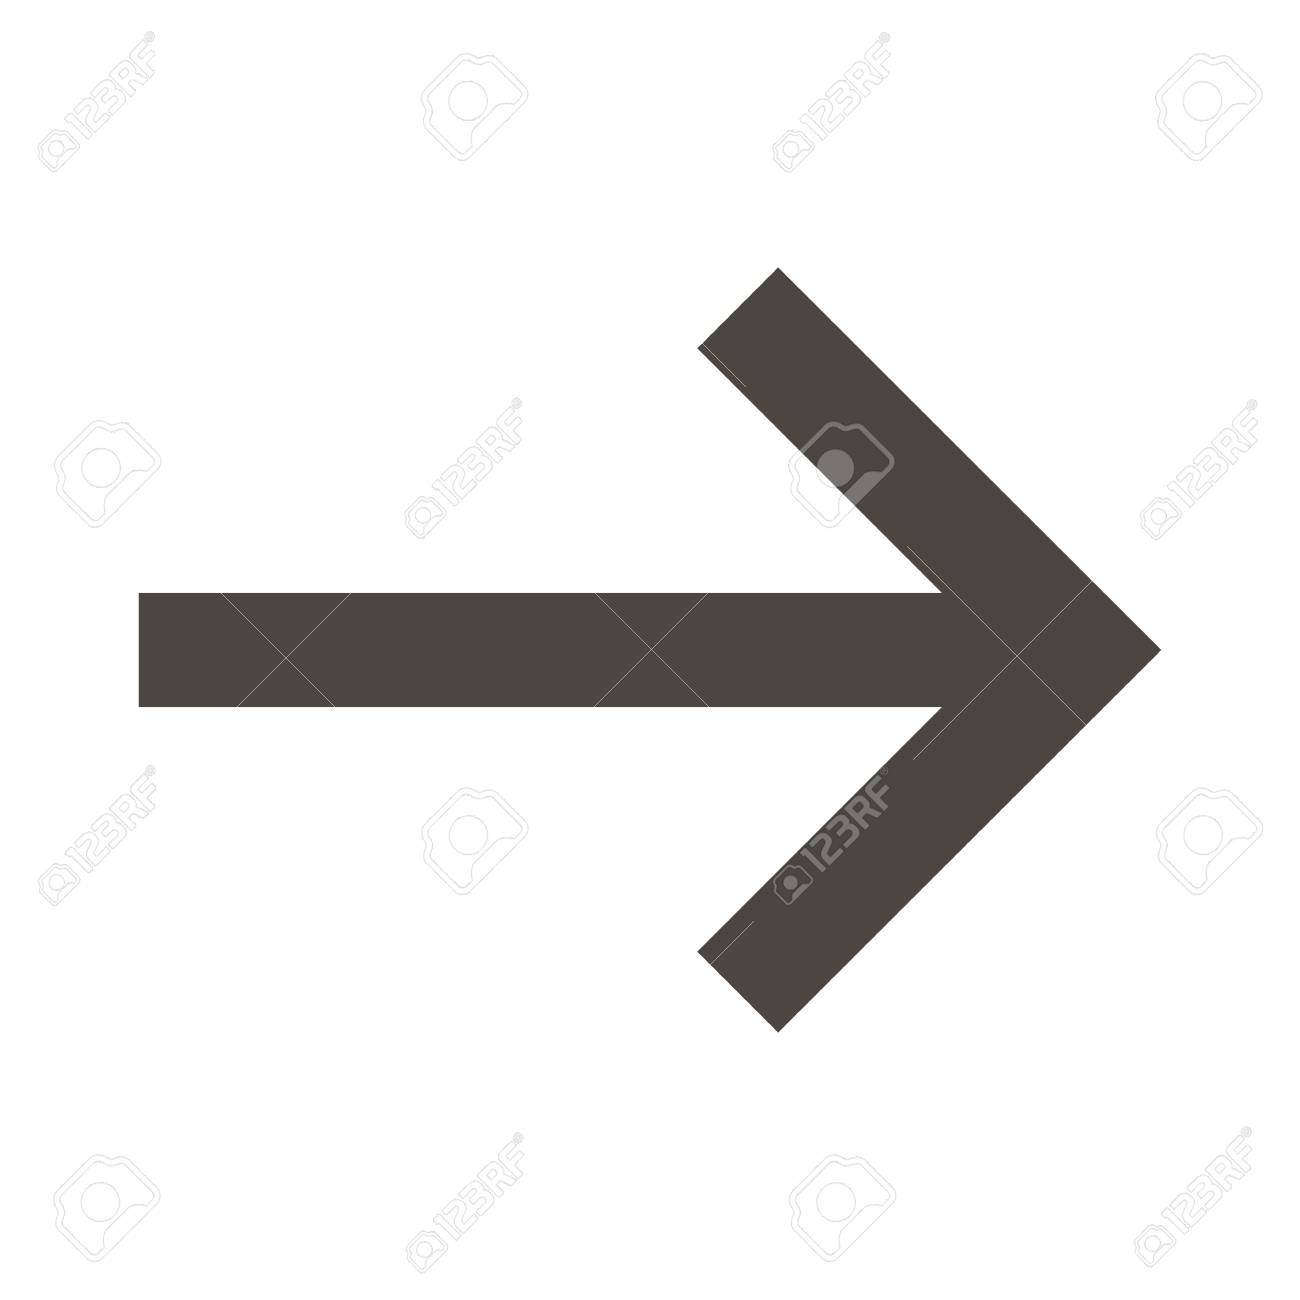 Flat Design Arrow Pointing Right Icon Vector Illustration Royalty Free Cliparts Vectors And Stock Illustration Image 62291820